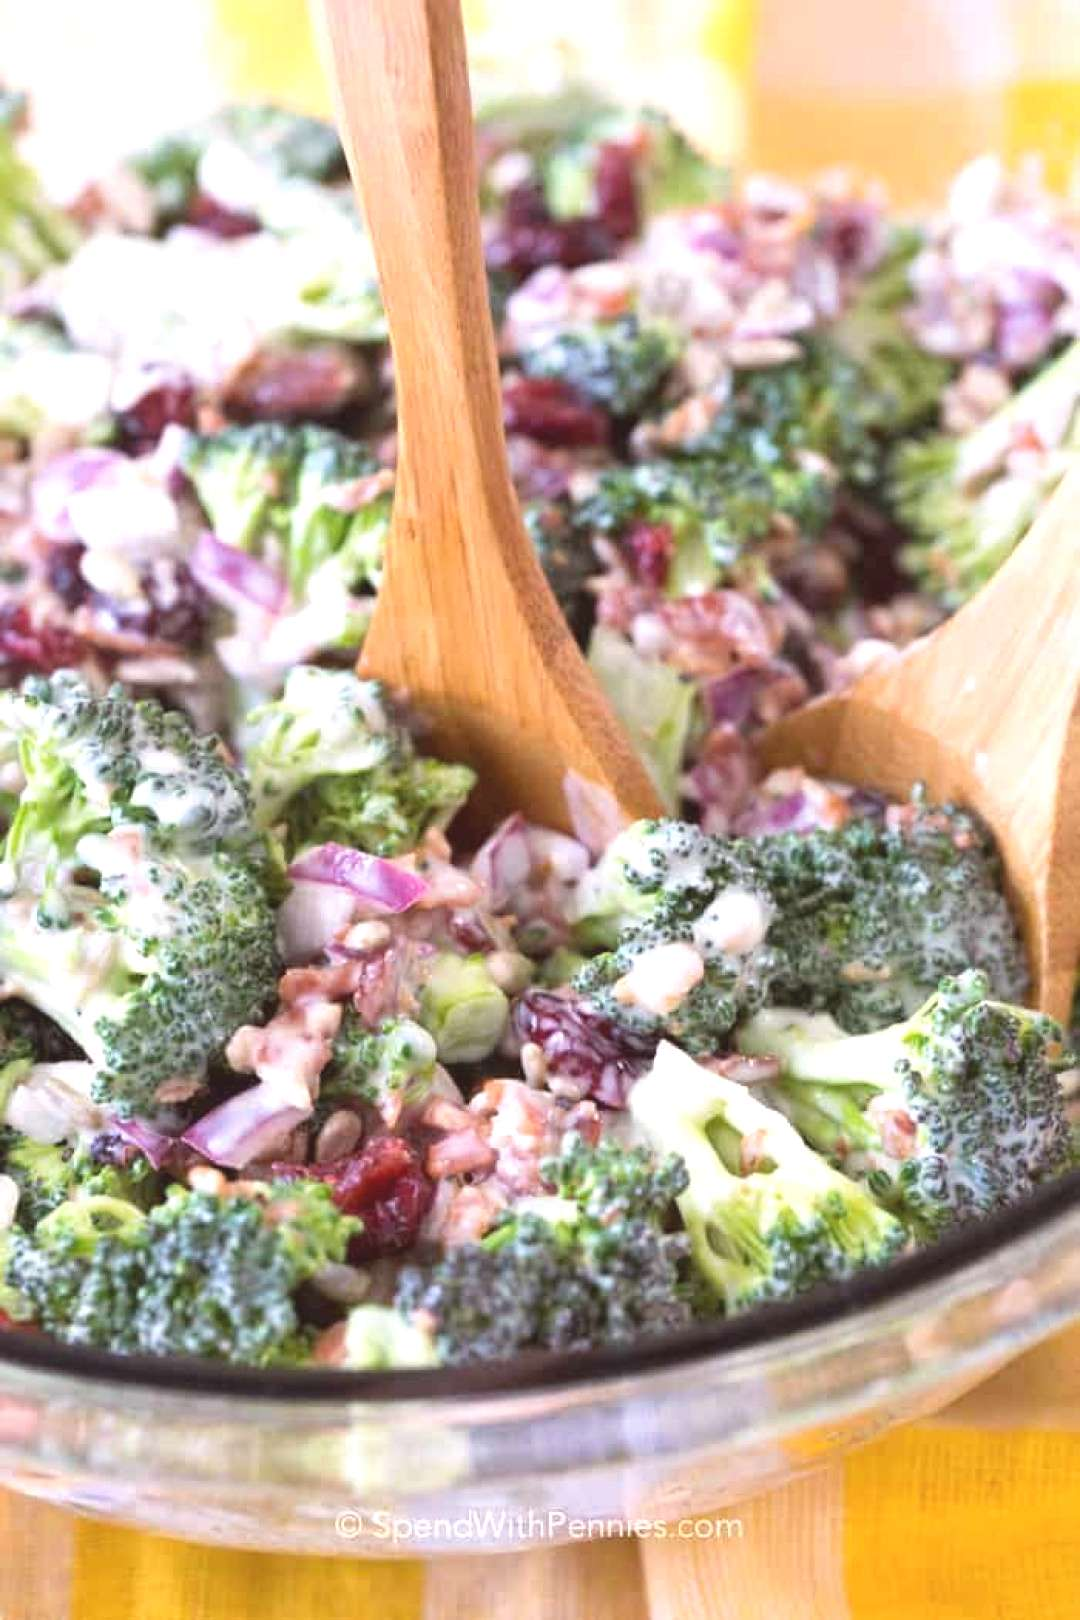 Broccoli Salad - Spend With Pennies,Broccoli Salad can be made in advance and kept in the fri... Br